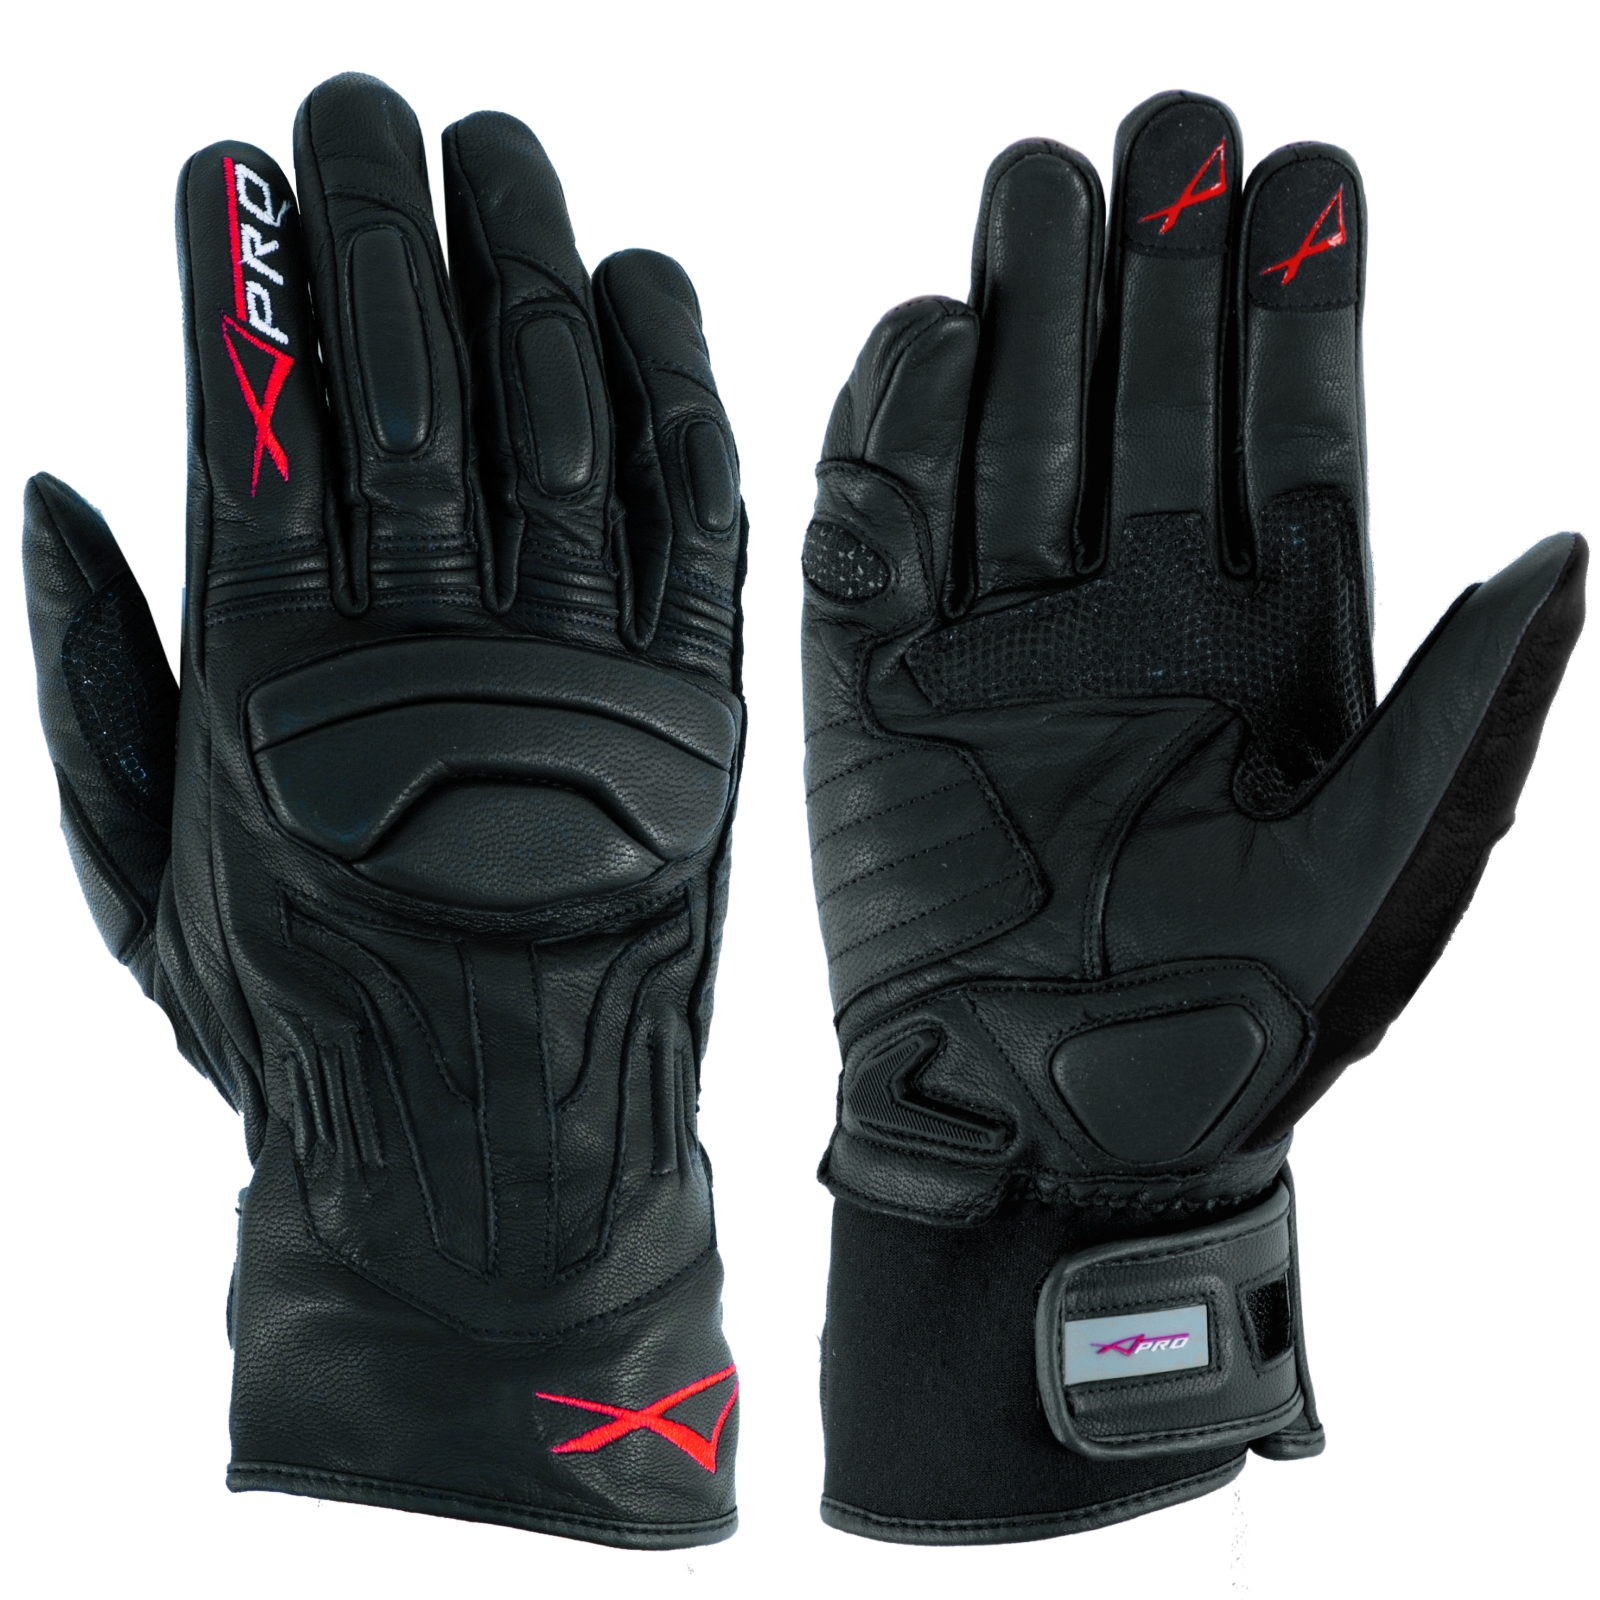 gants et sport cuir souple doublure moto motard touring piste a pro noir. Black Bedroom Furniture Sets. Home Design Ideas